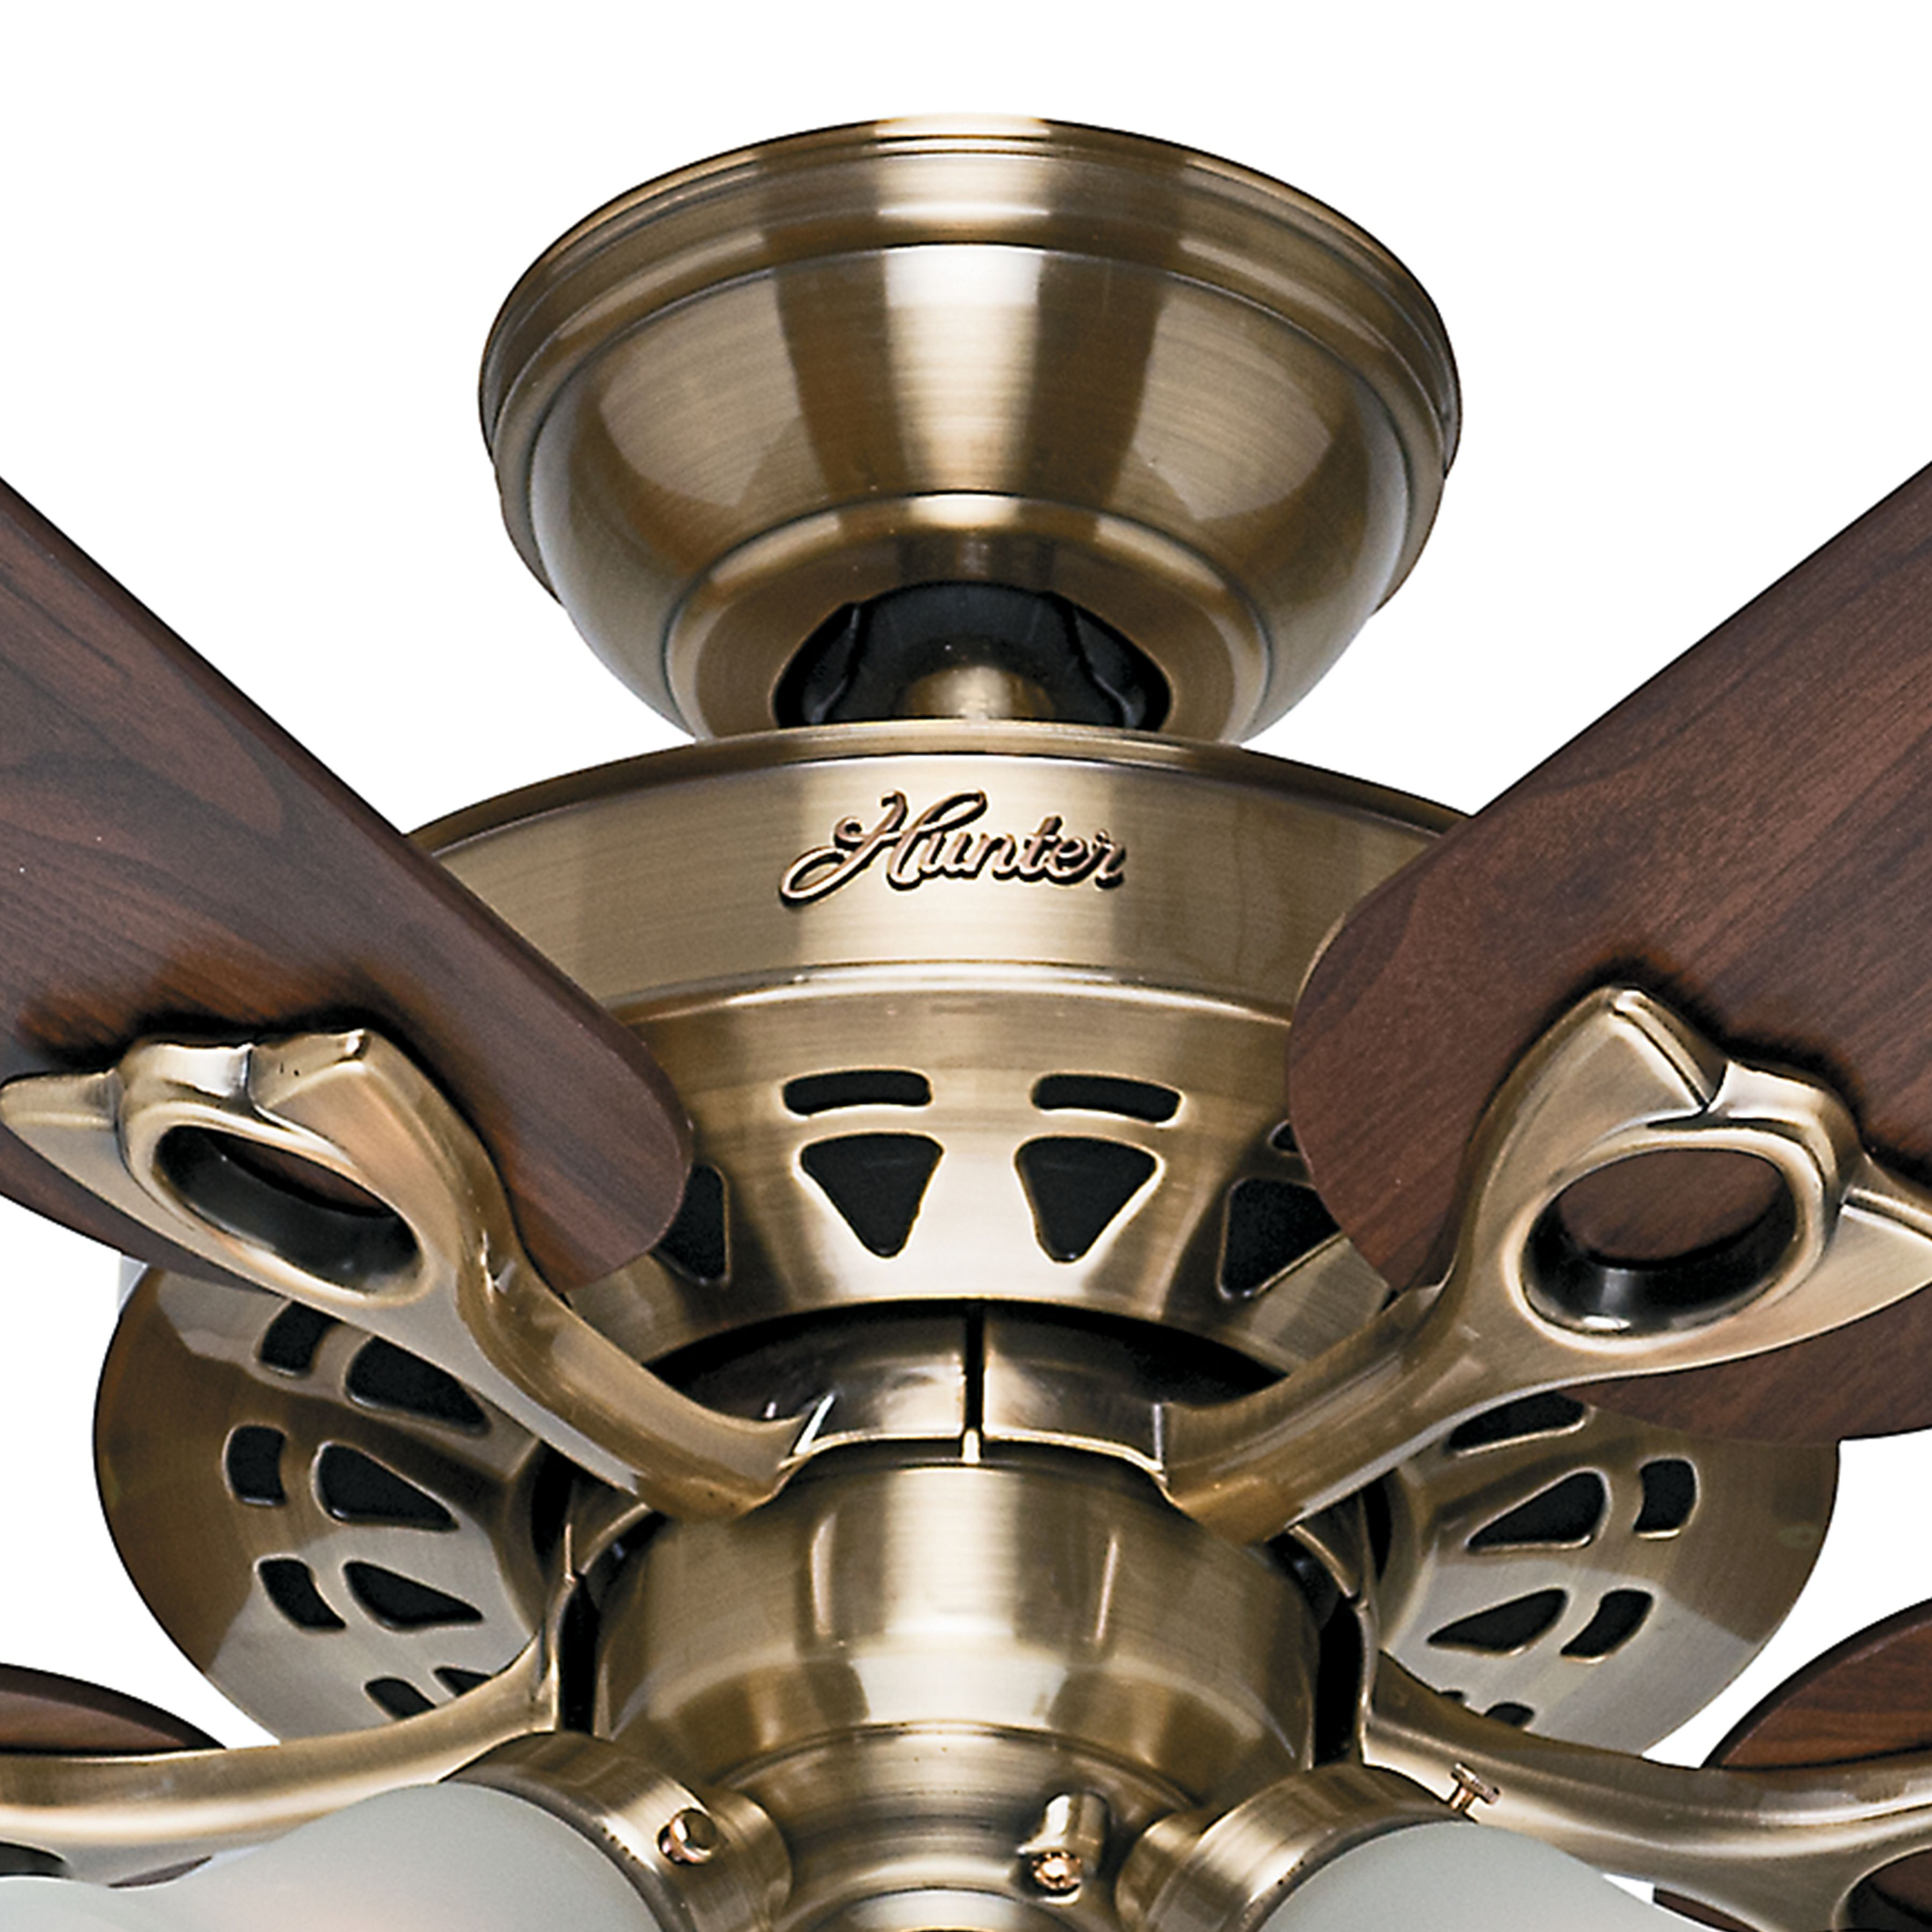 Hunter 52 inch antique brass finish ceiling fan with reversible hunter 52 inch antique brass finish ceiling fan with reversible dark fan blades remote control included hunter 53115 aloadofball Images